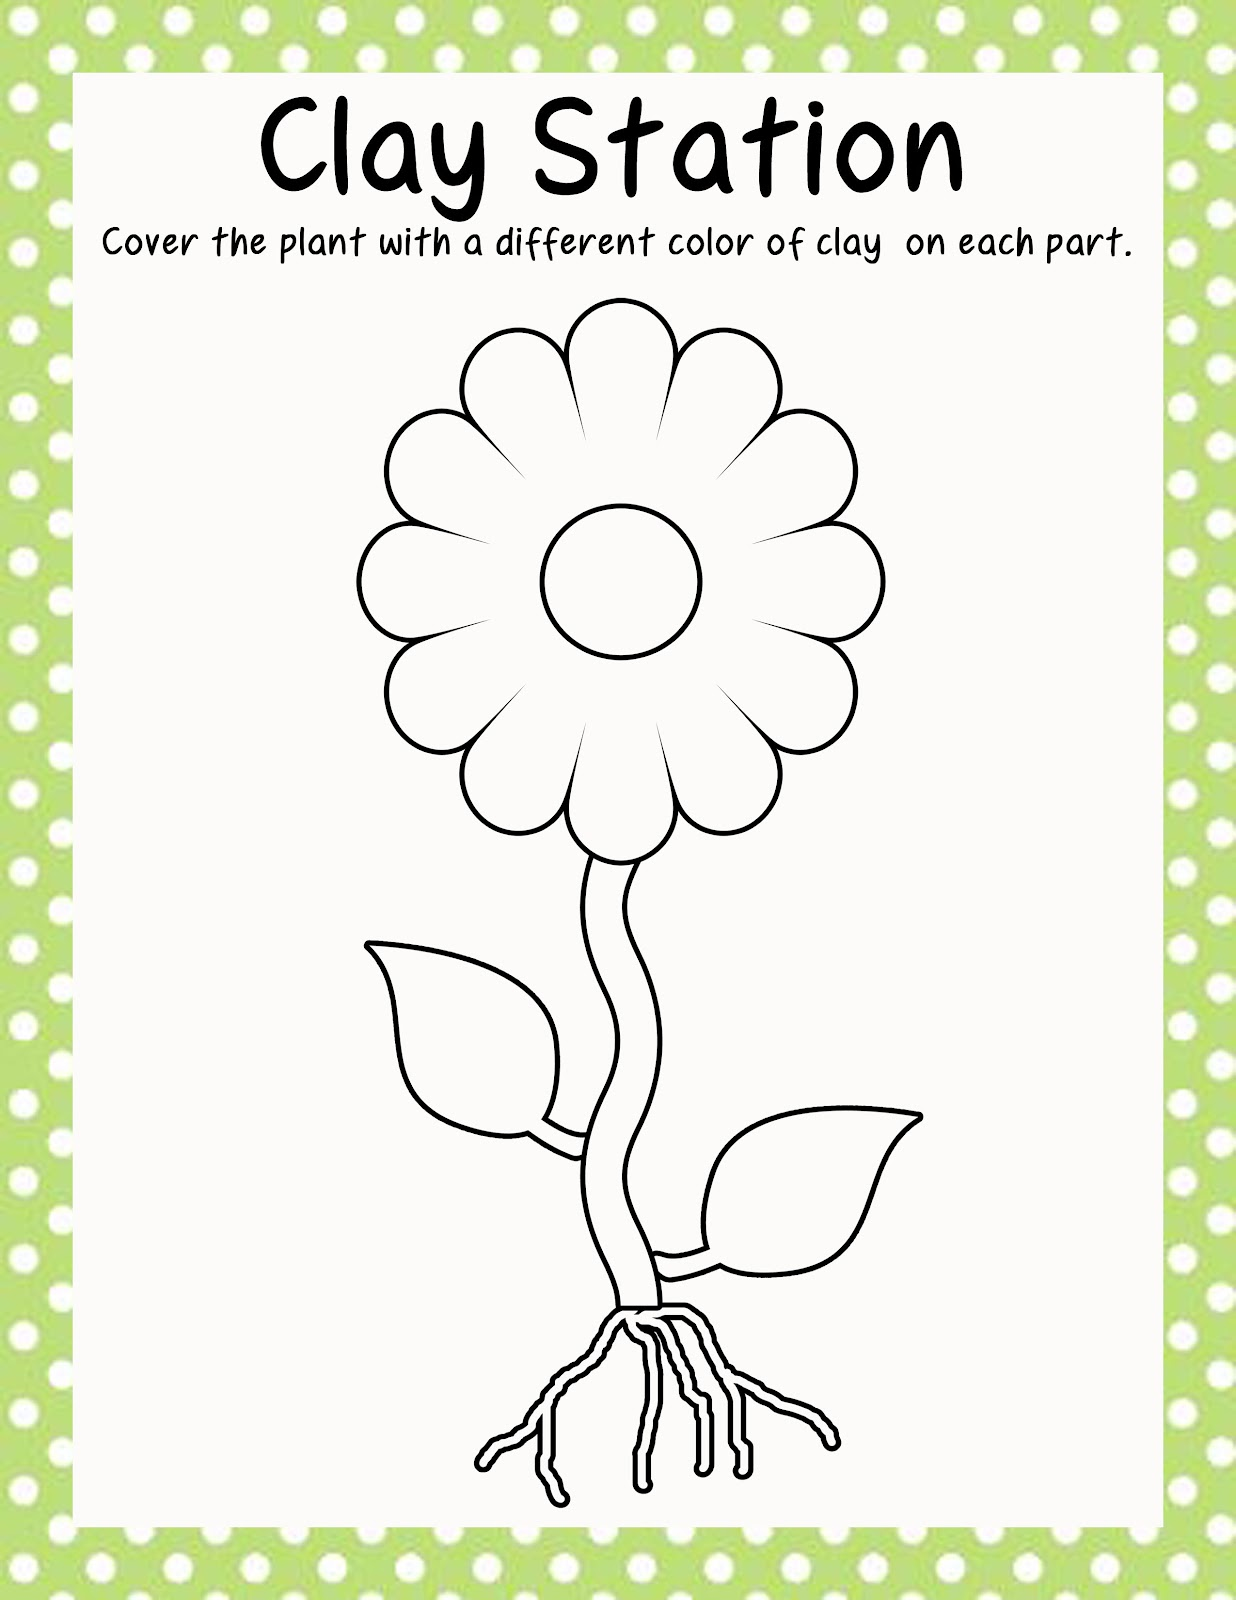 Parts of Plants Coloring Page http://polkadotsandteachingtots.blogspot.com/2012/07/50-follower-giveaway-structures-of.html